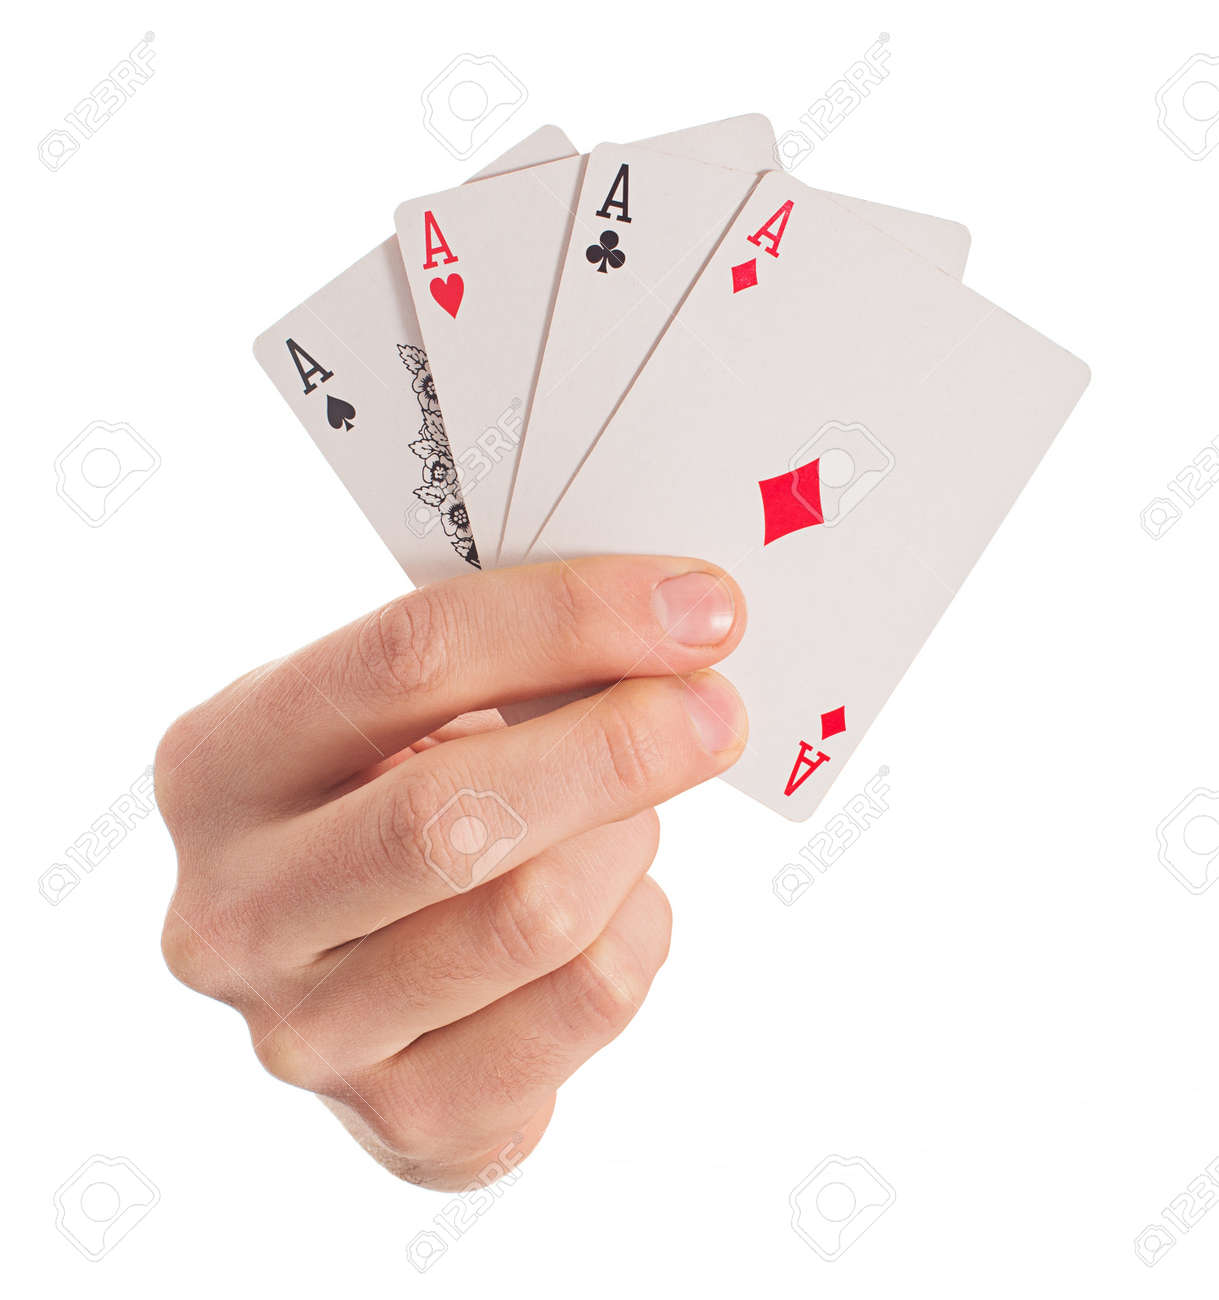 Close-up Of Hand Holding Four Aces On White Background - 22036796